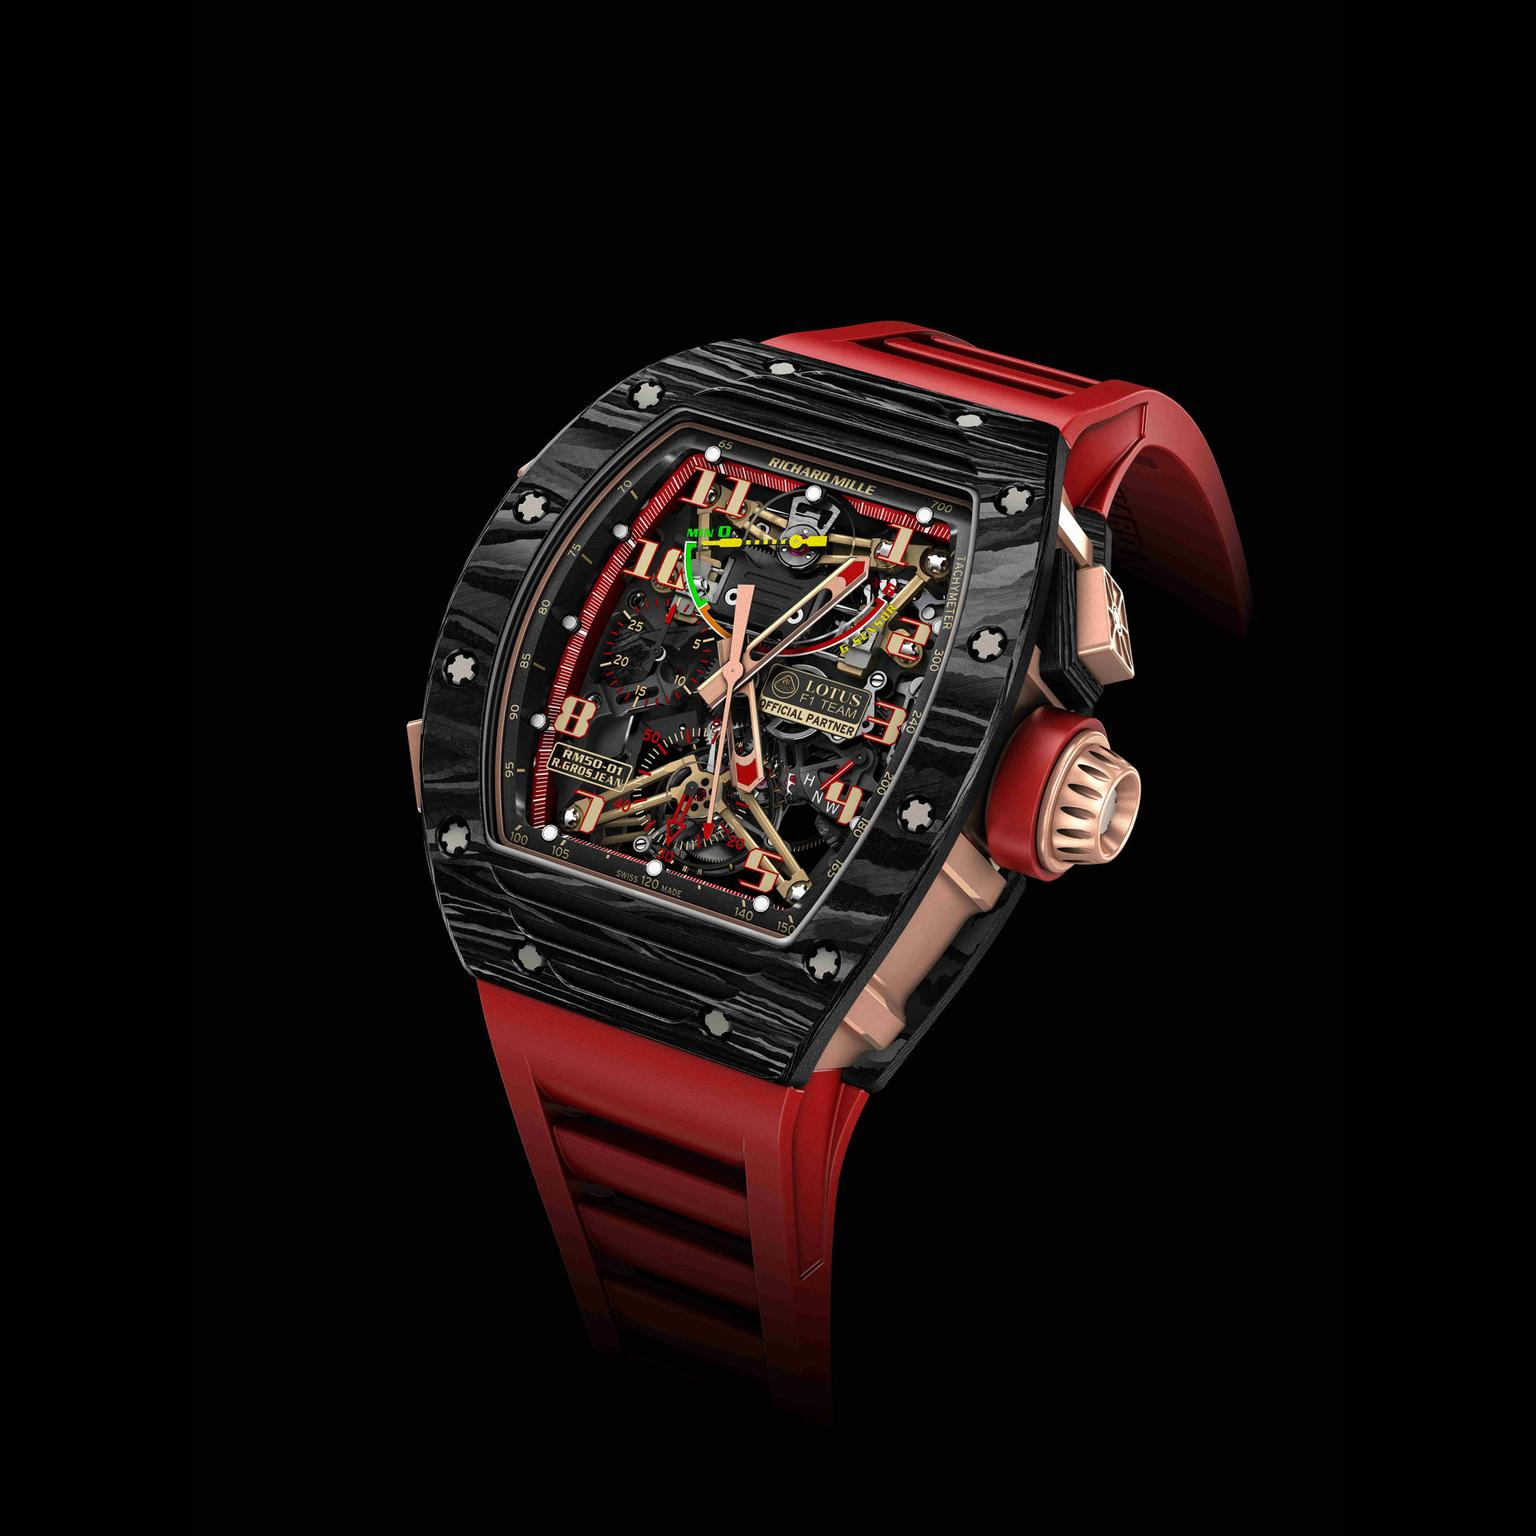 Richard Mille RM50-01 watch